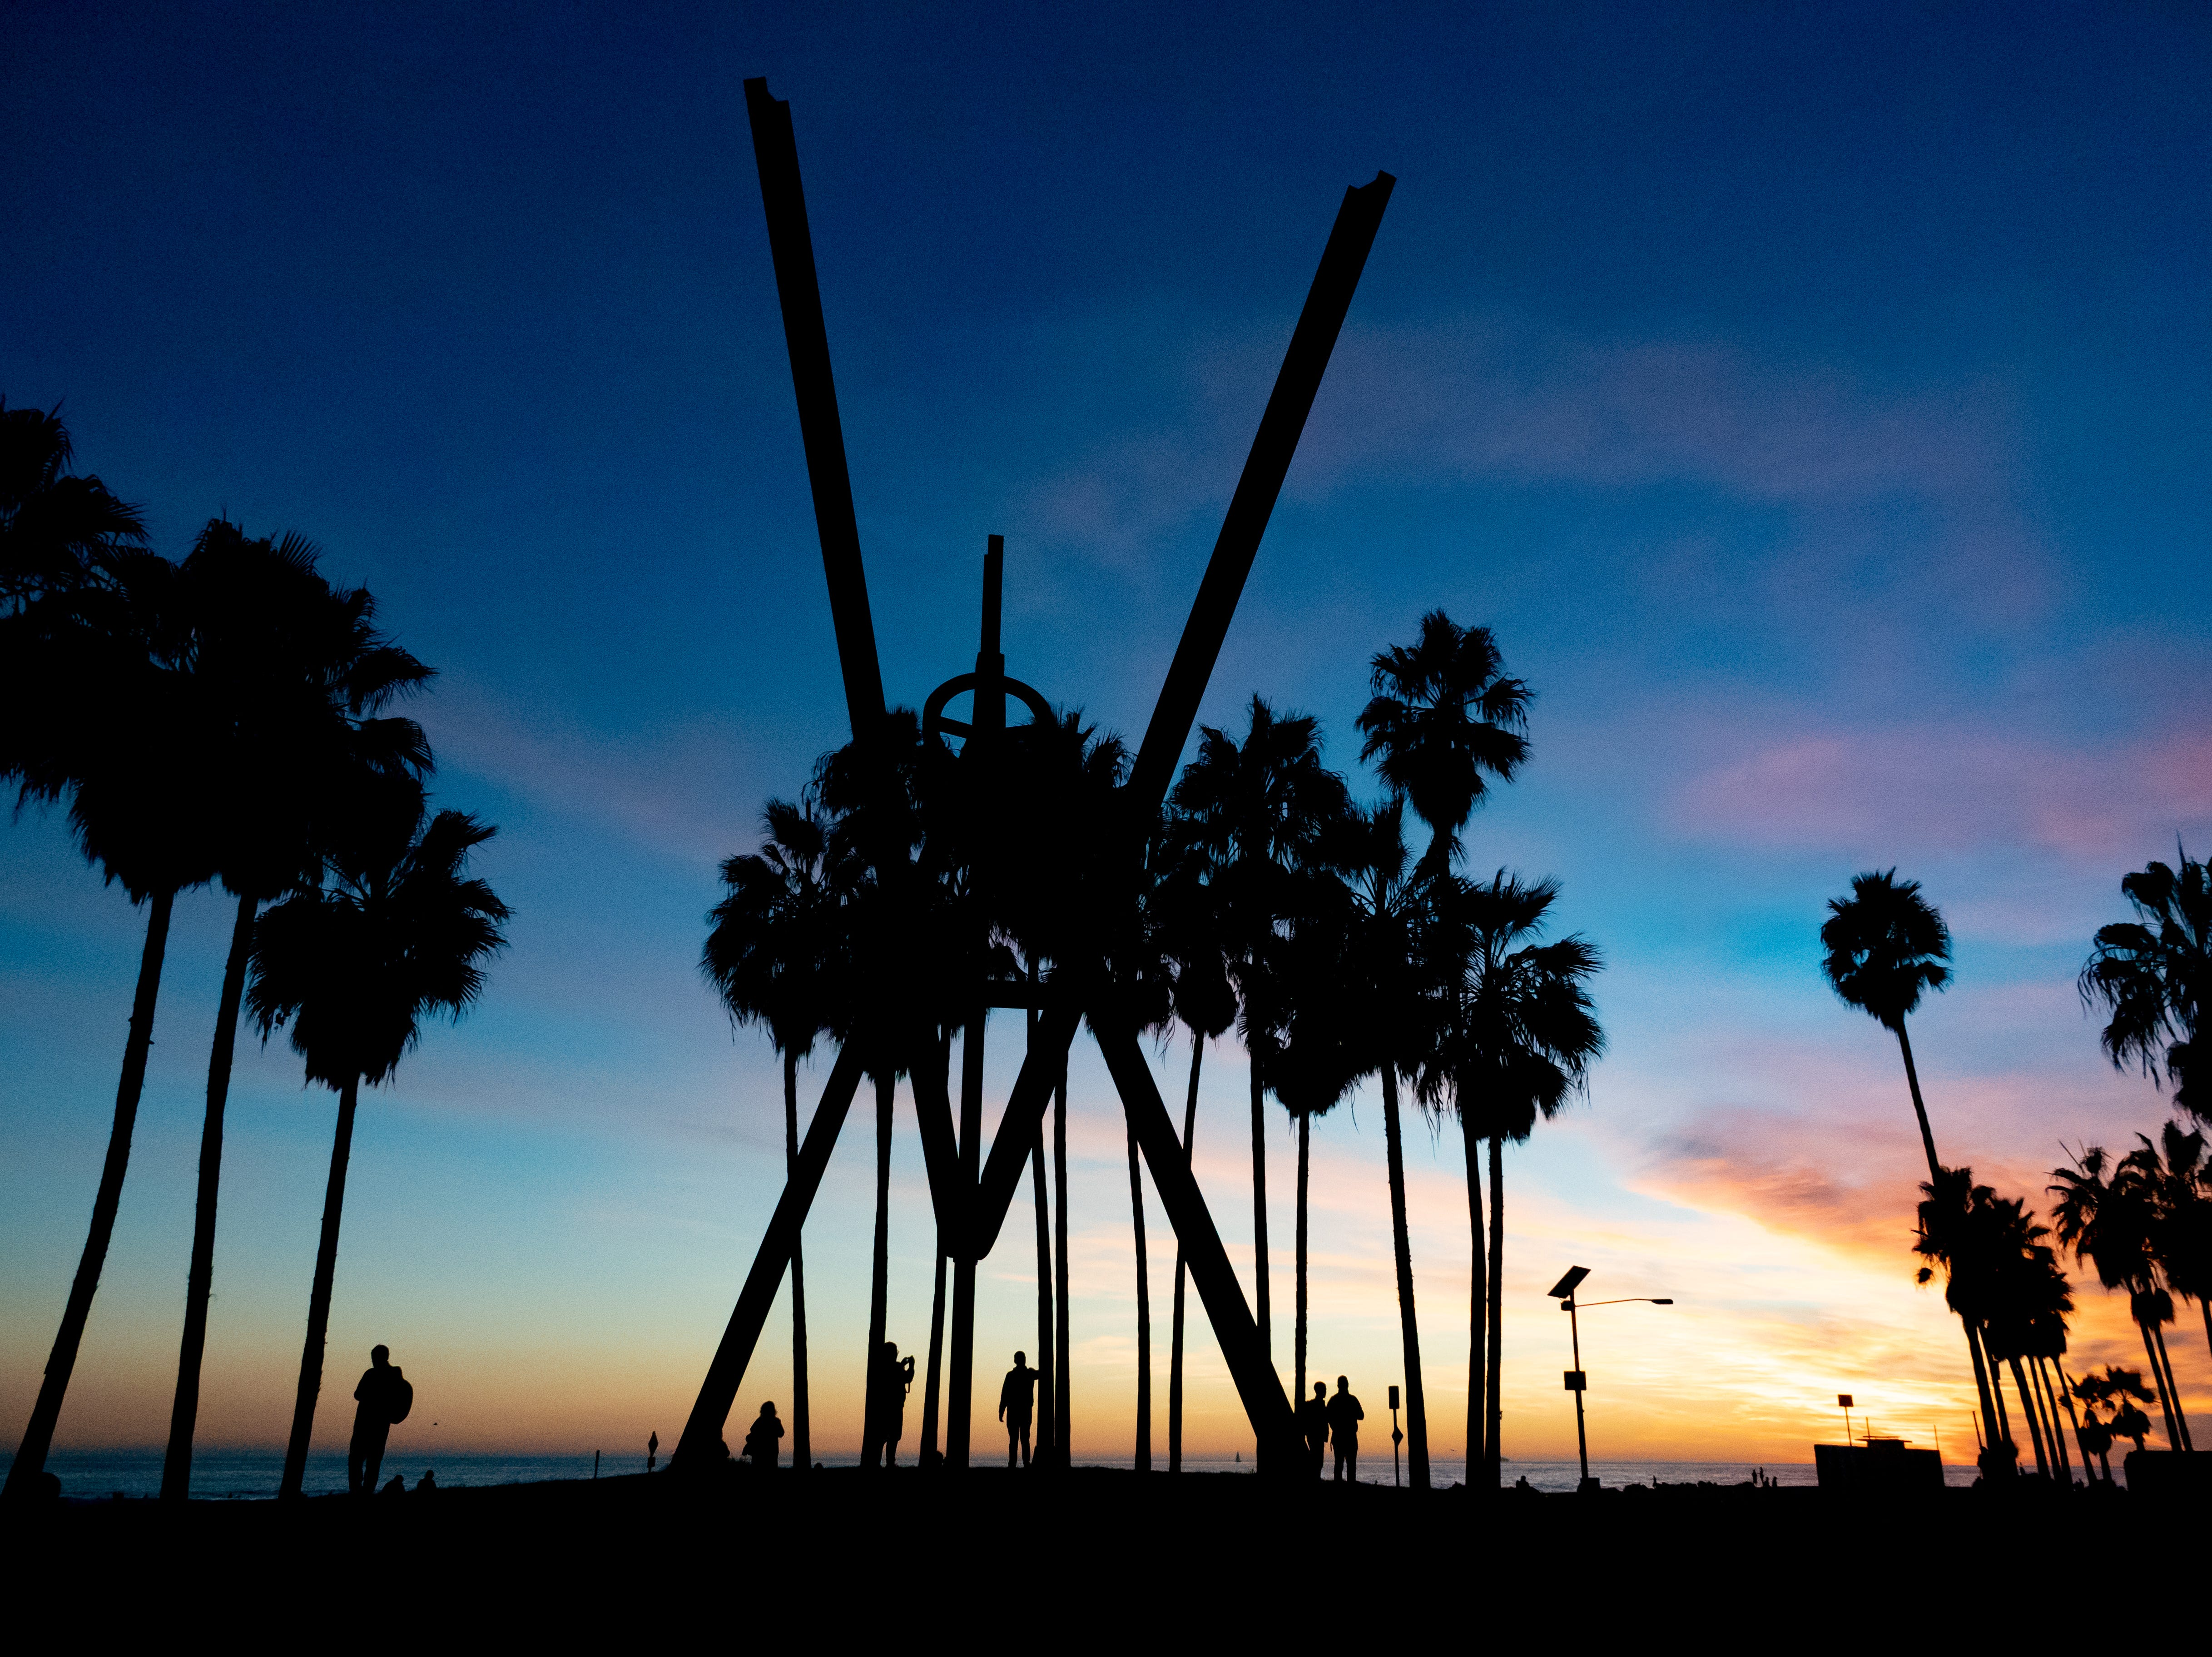 The V for Venice sculpture in Venice Beach.